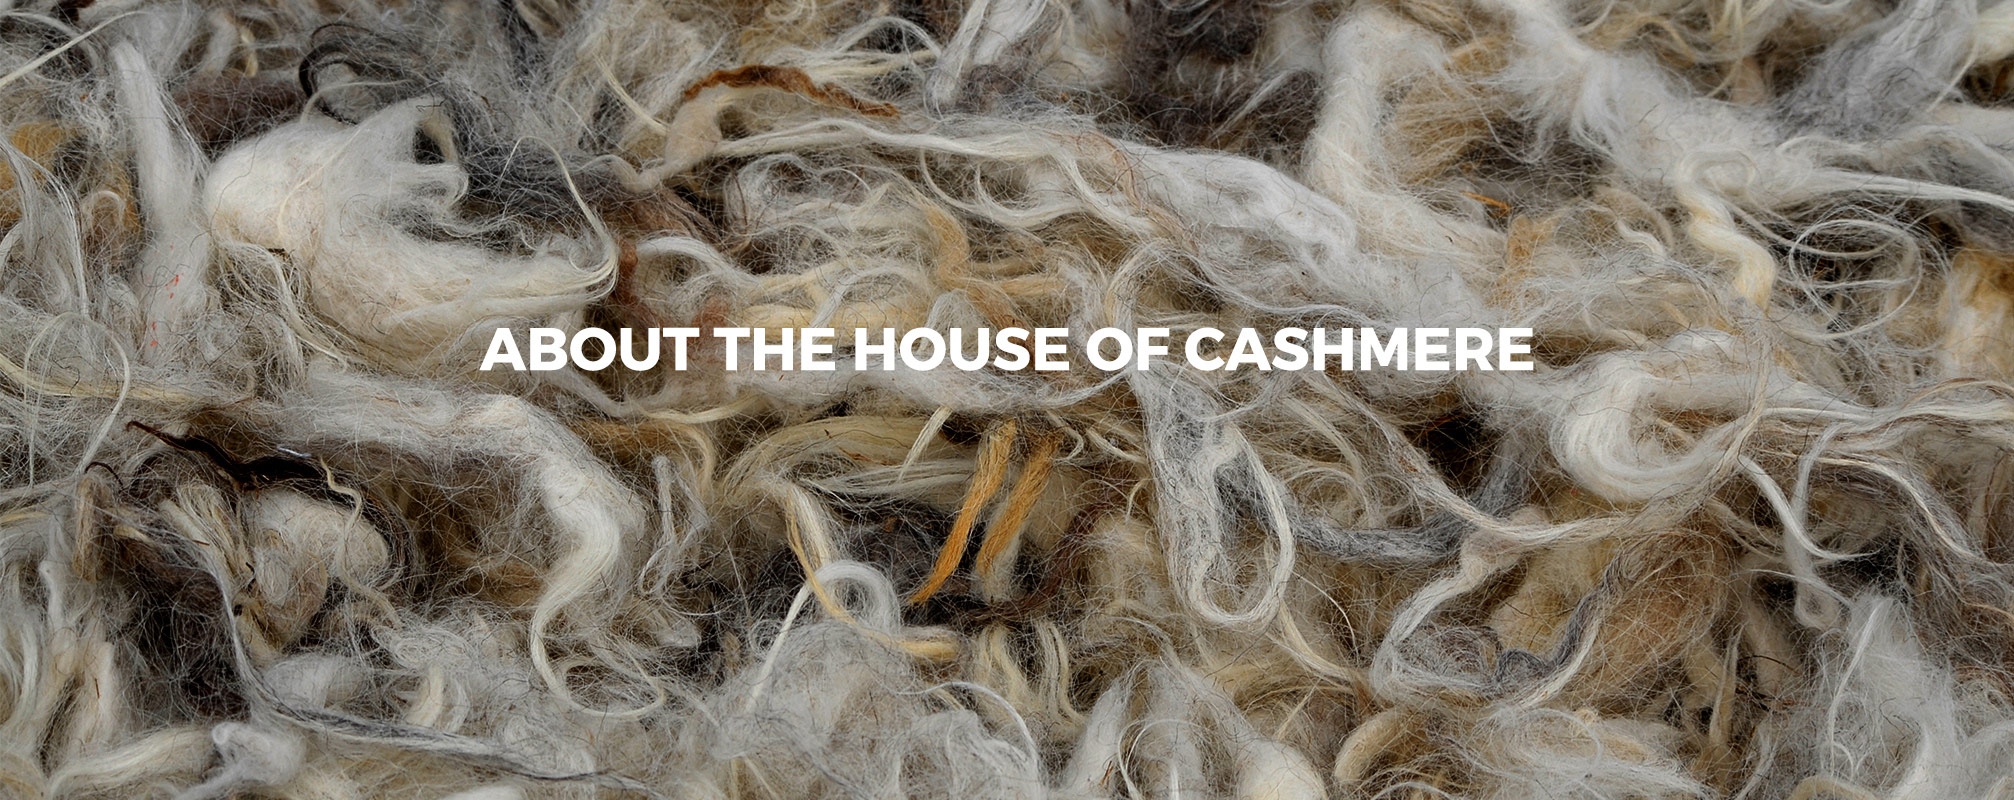 about the house of cashmere